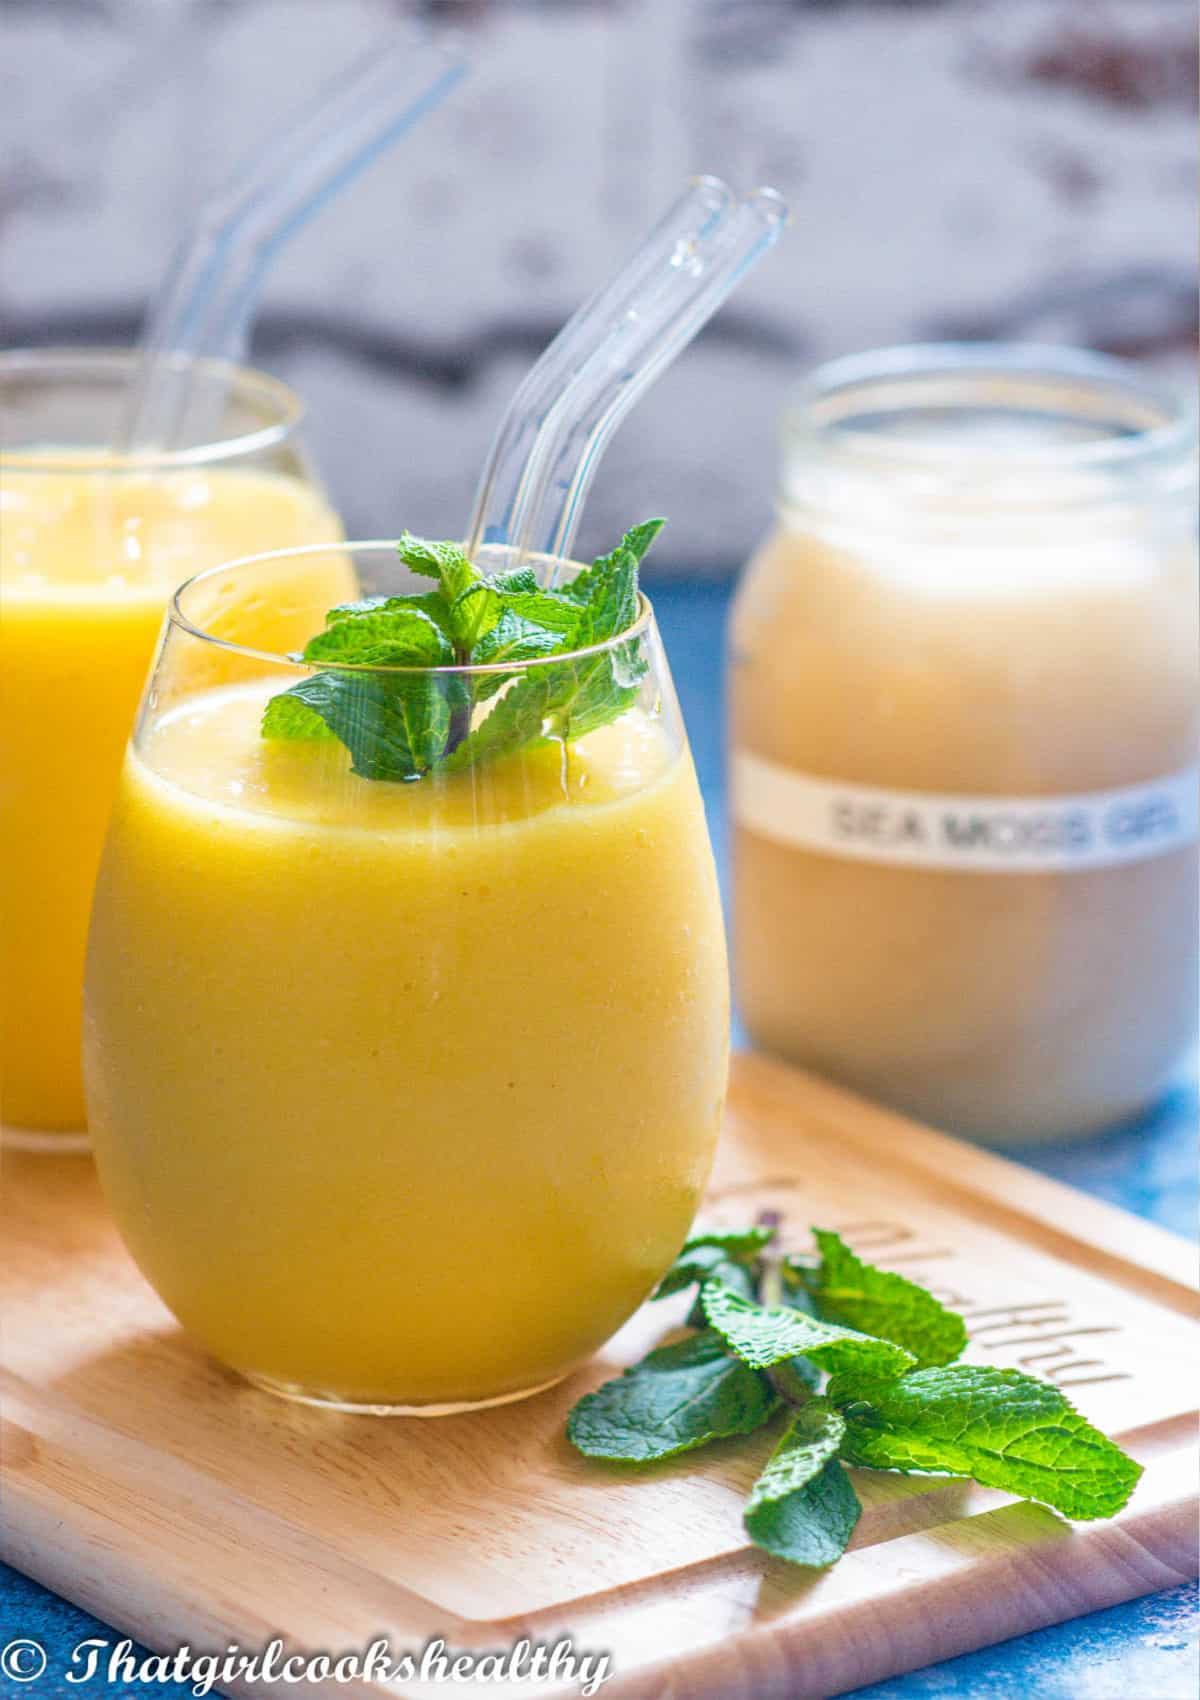 smoothie with mint leaves